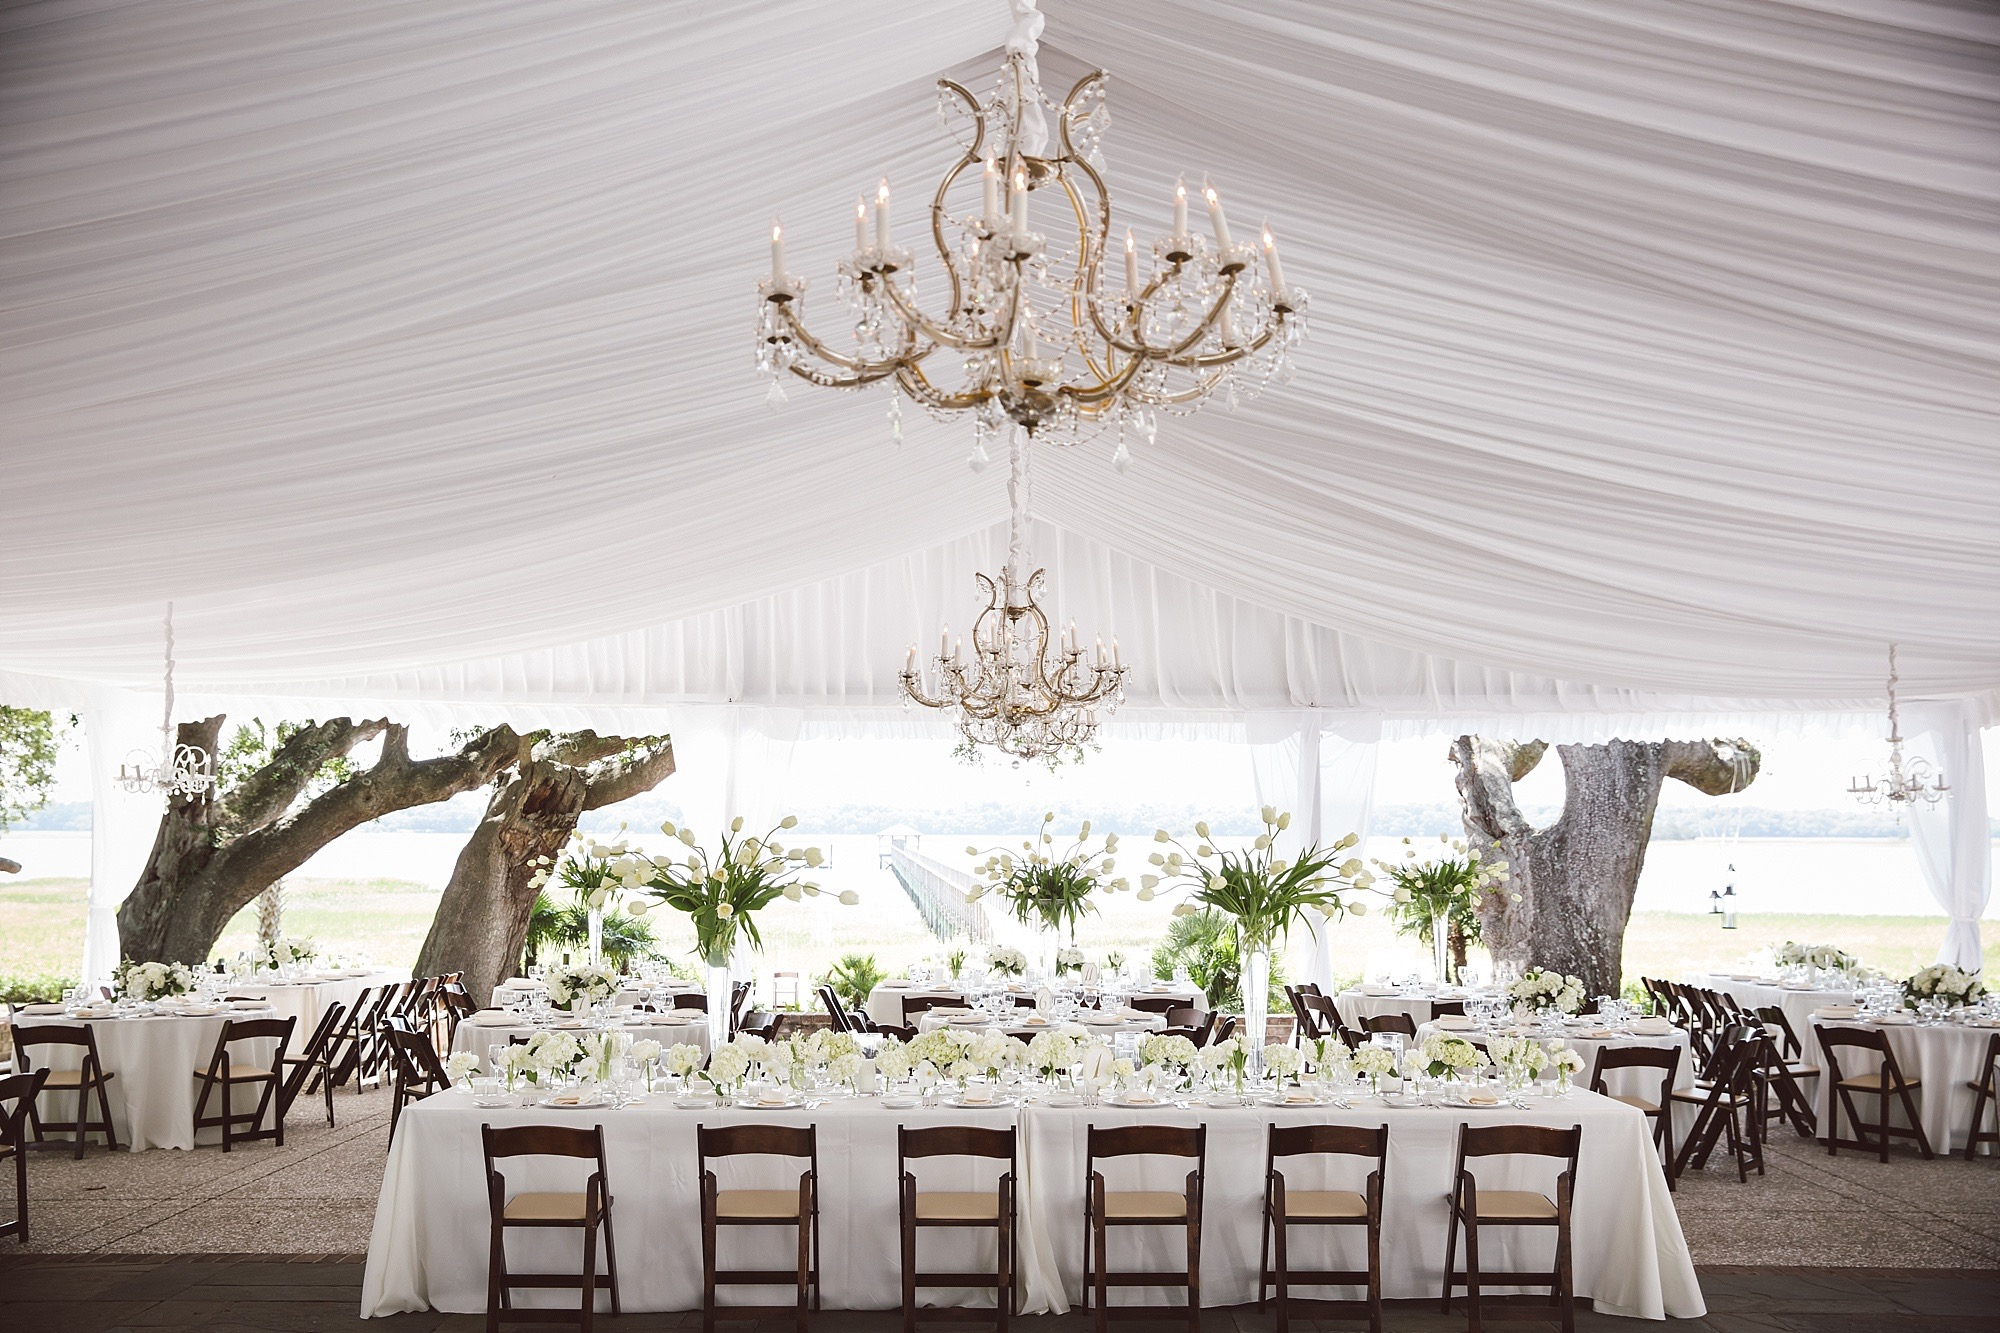 White Chic Tented Wedding - WED